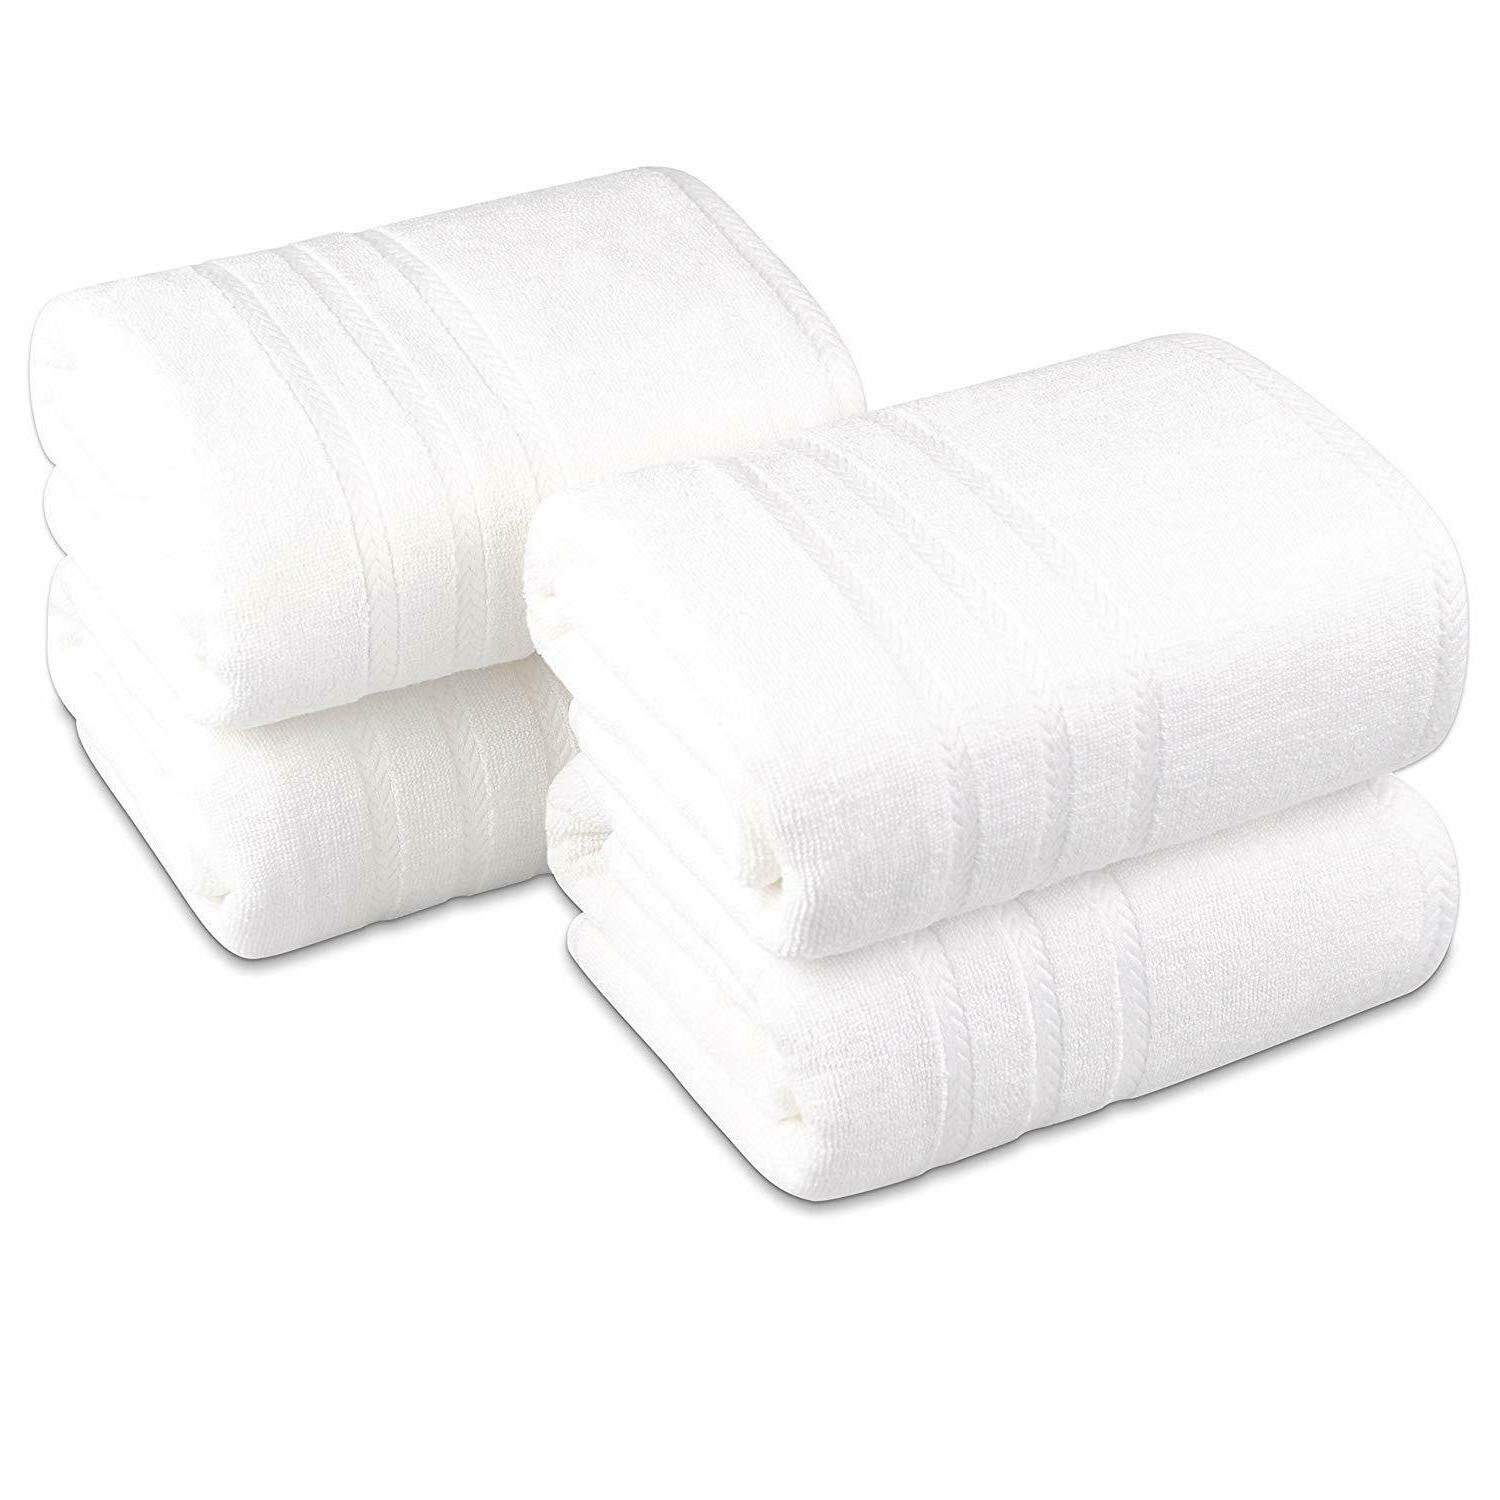 Luxury Egyptian Quality 100% Cotton Bath Towels 4 pieces in